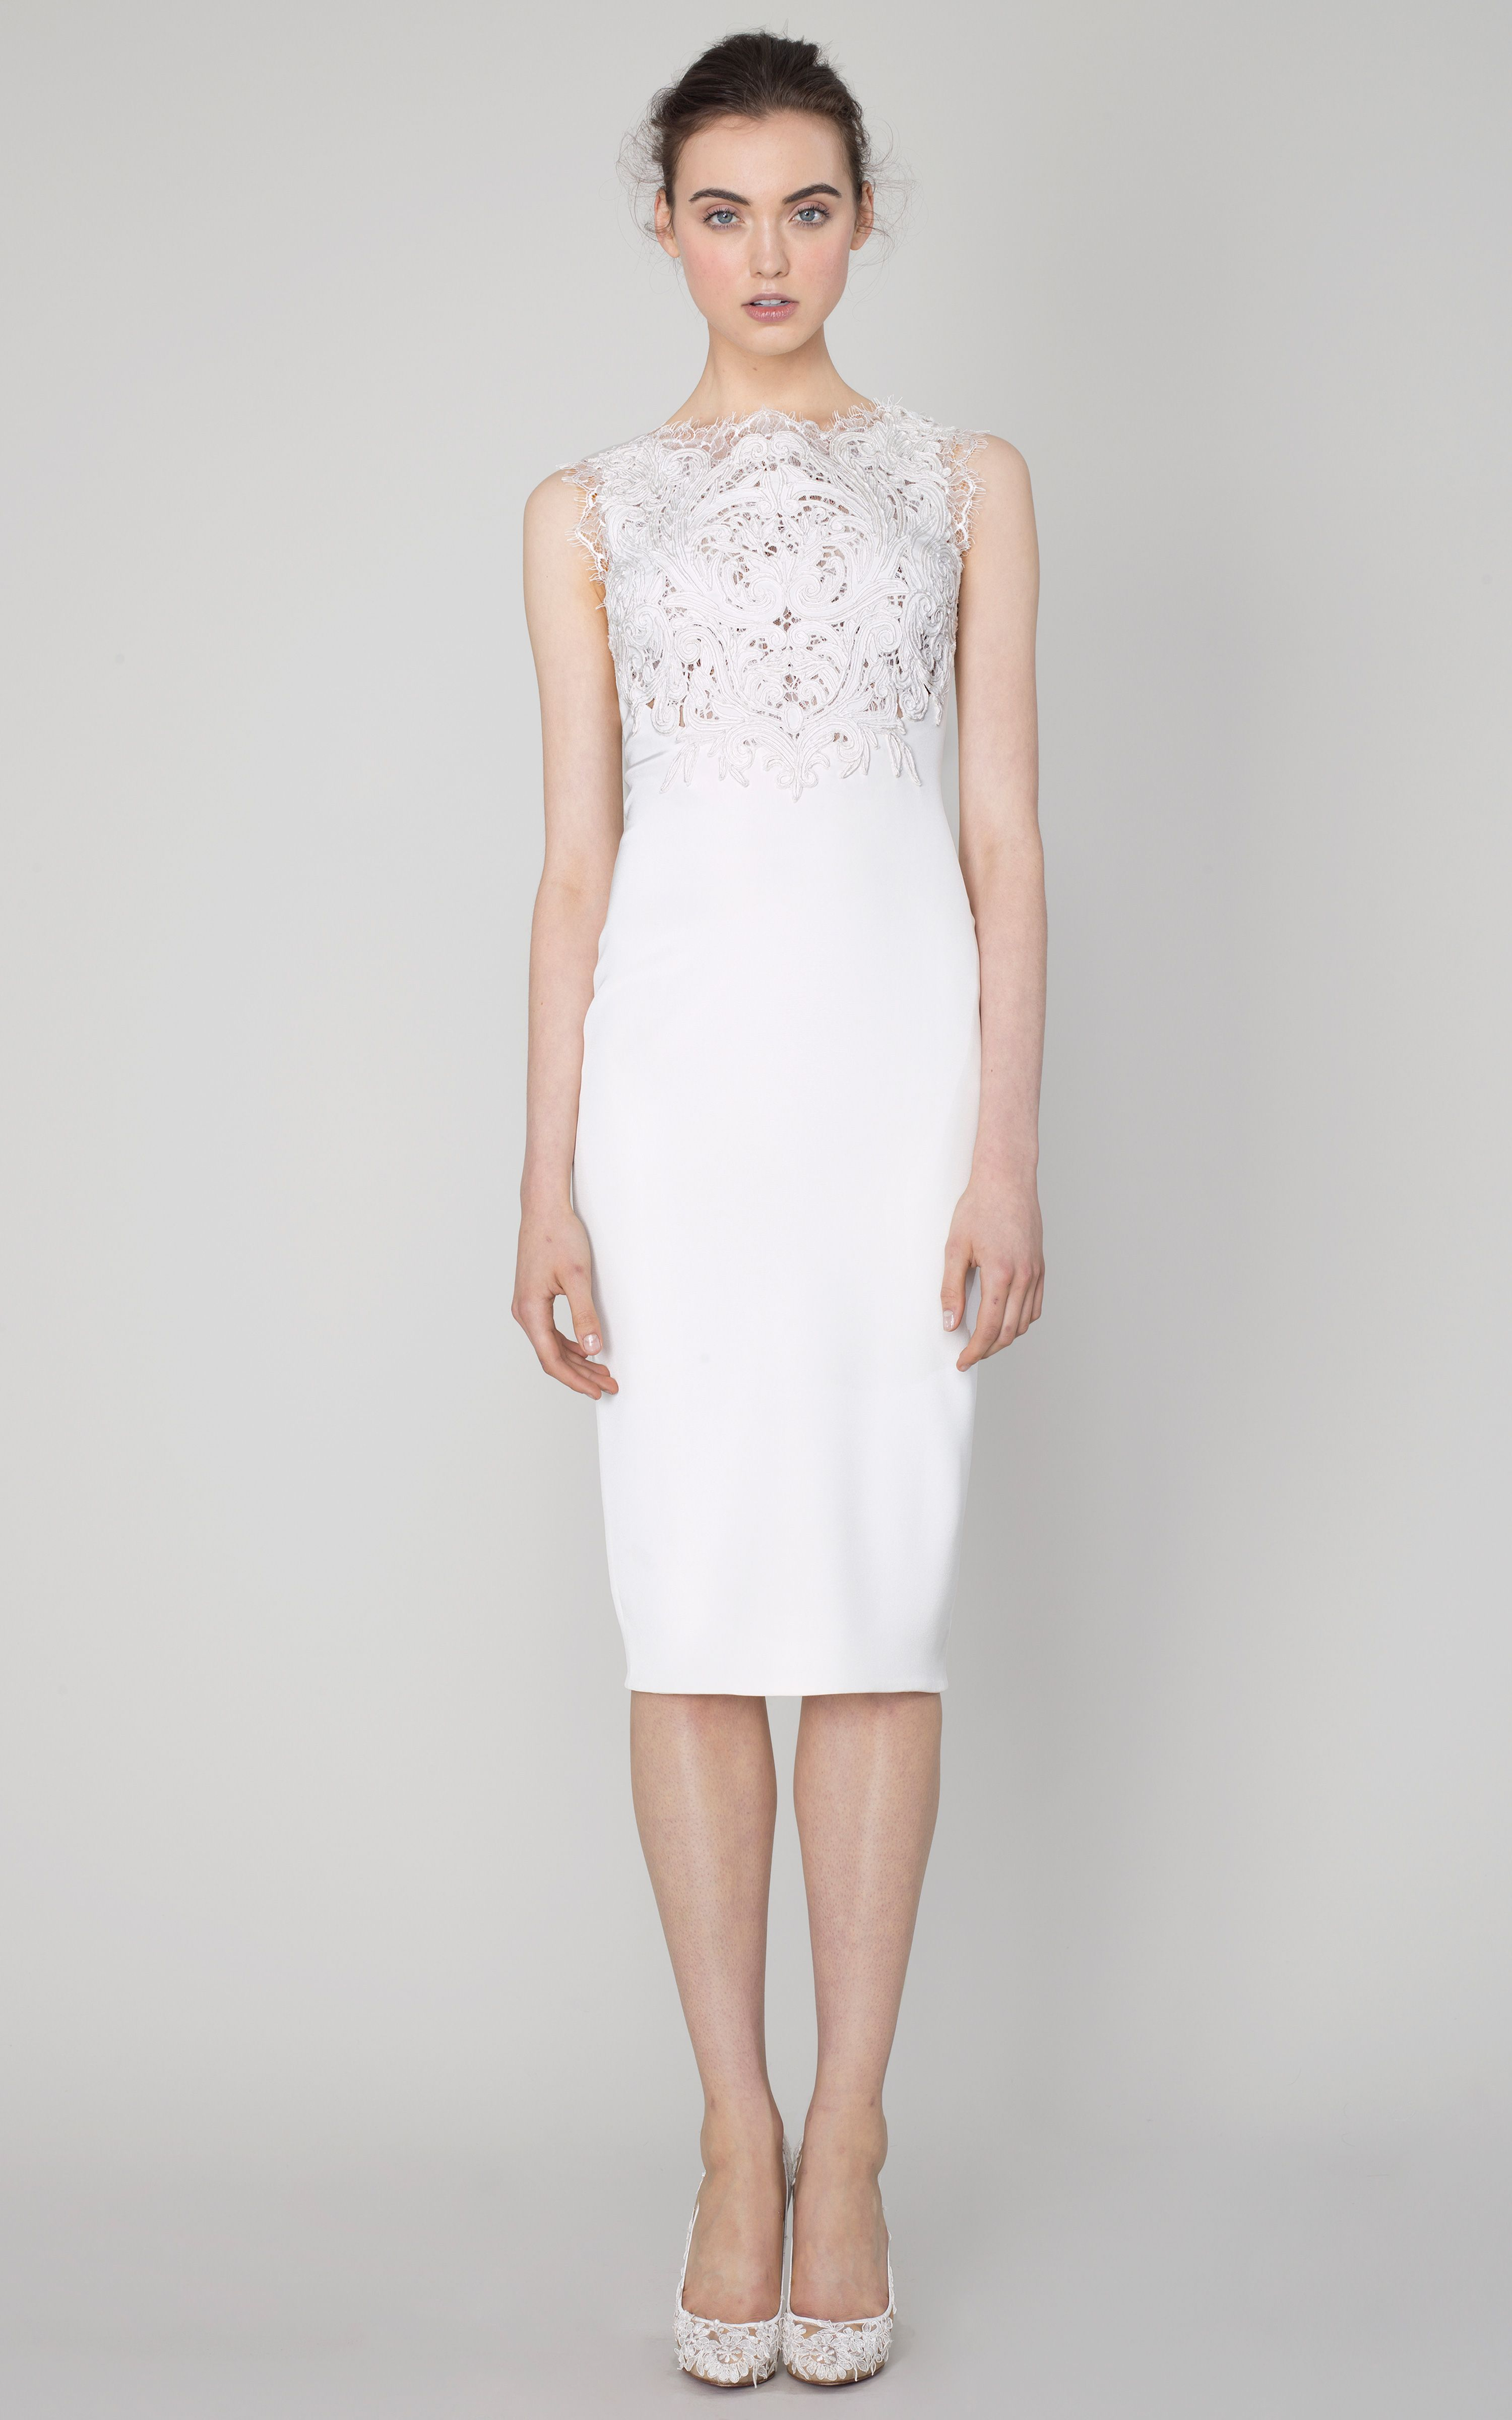 Marchesa Women S White Silk Crepe Sheath Dress With Corded Embroidery Starting At 4305 Similar Products Also Available Now On